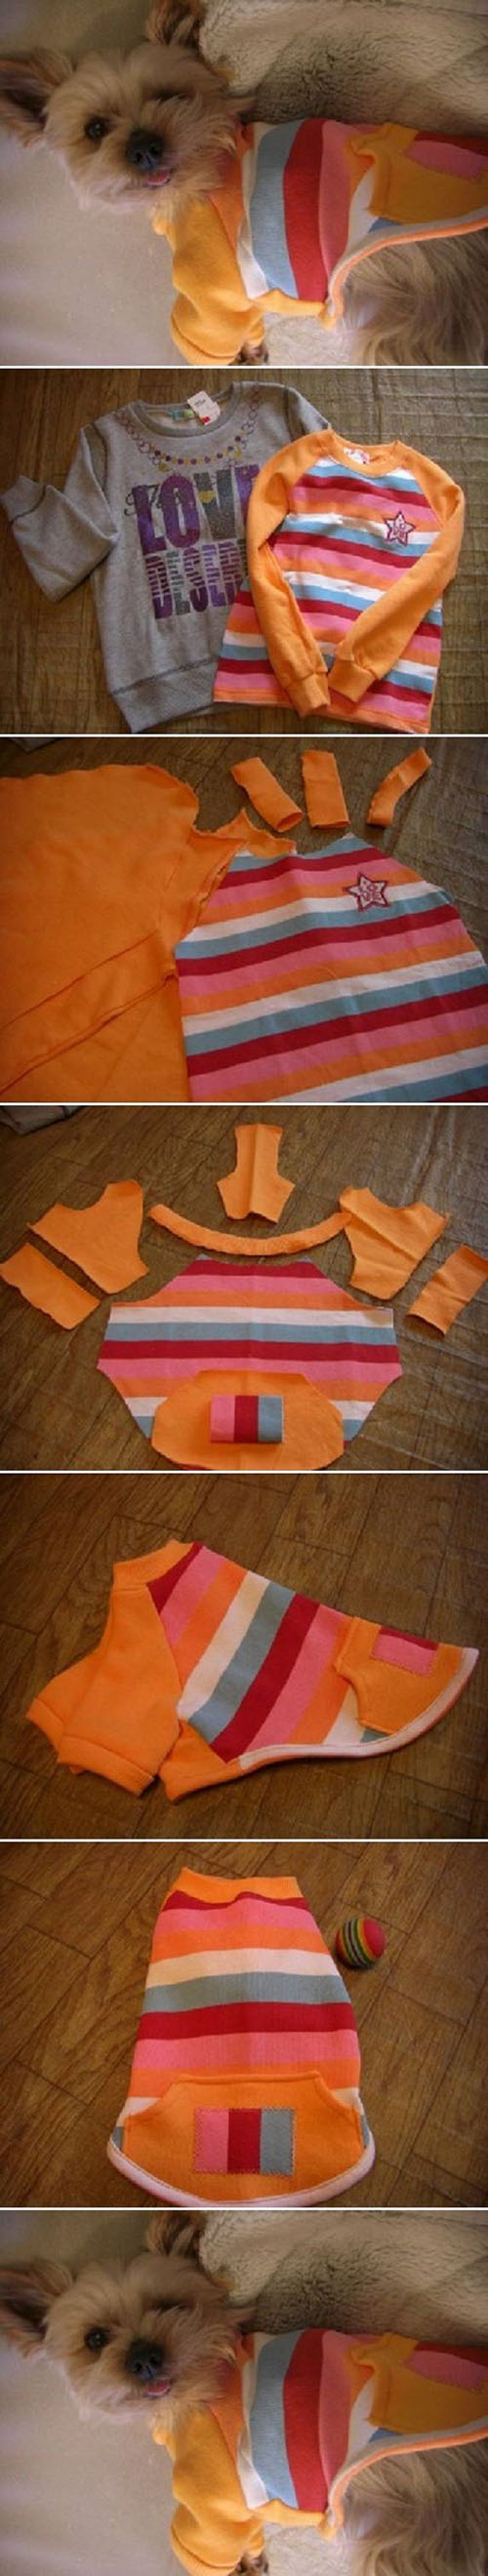 Easy DIY Dog Sweater11